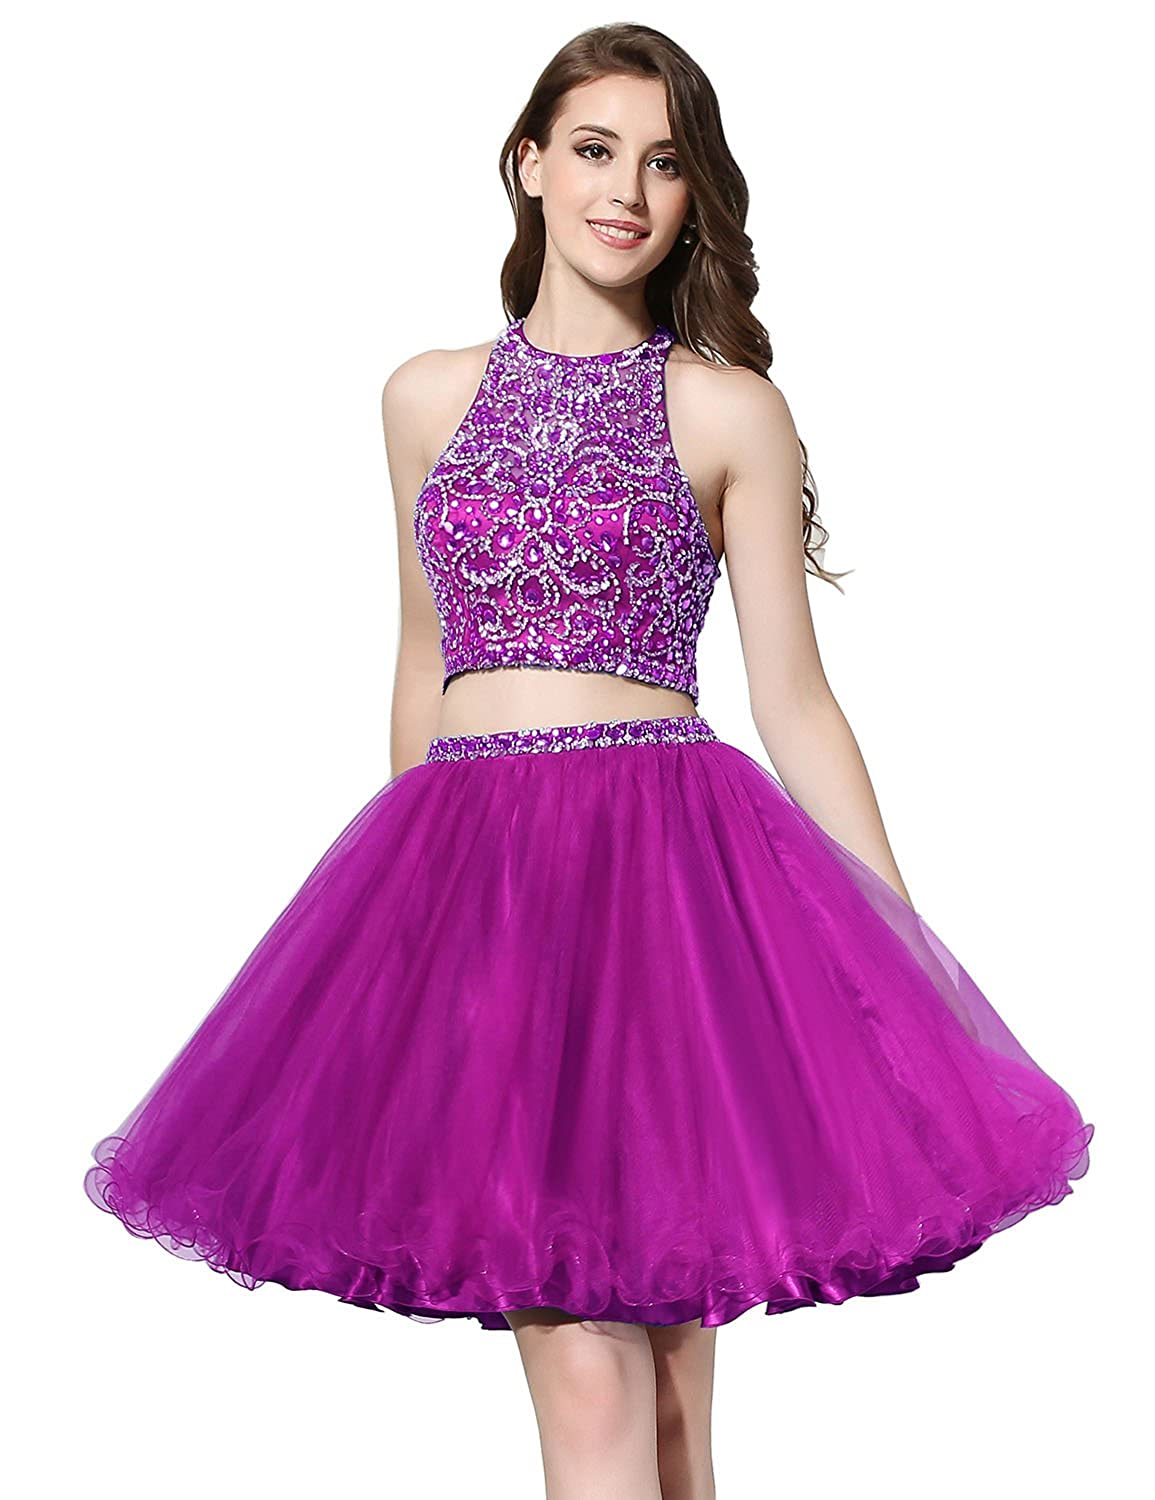 206fuchsia Sarahbridal Women's Short Tulle Beading Homecoming Dresses 2019 Prom Party Gowns